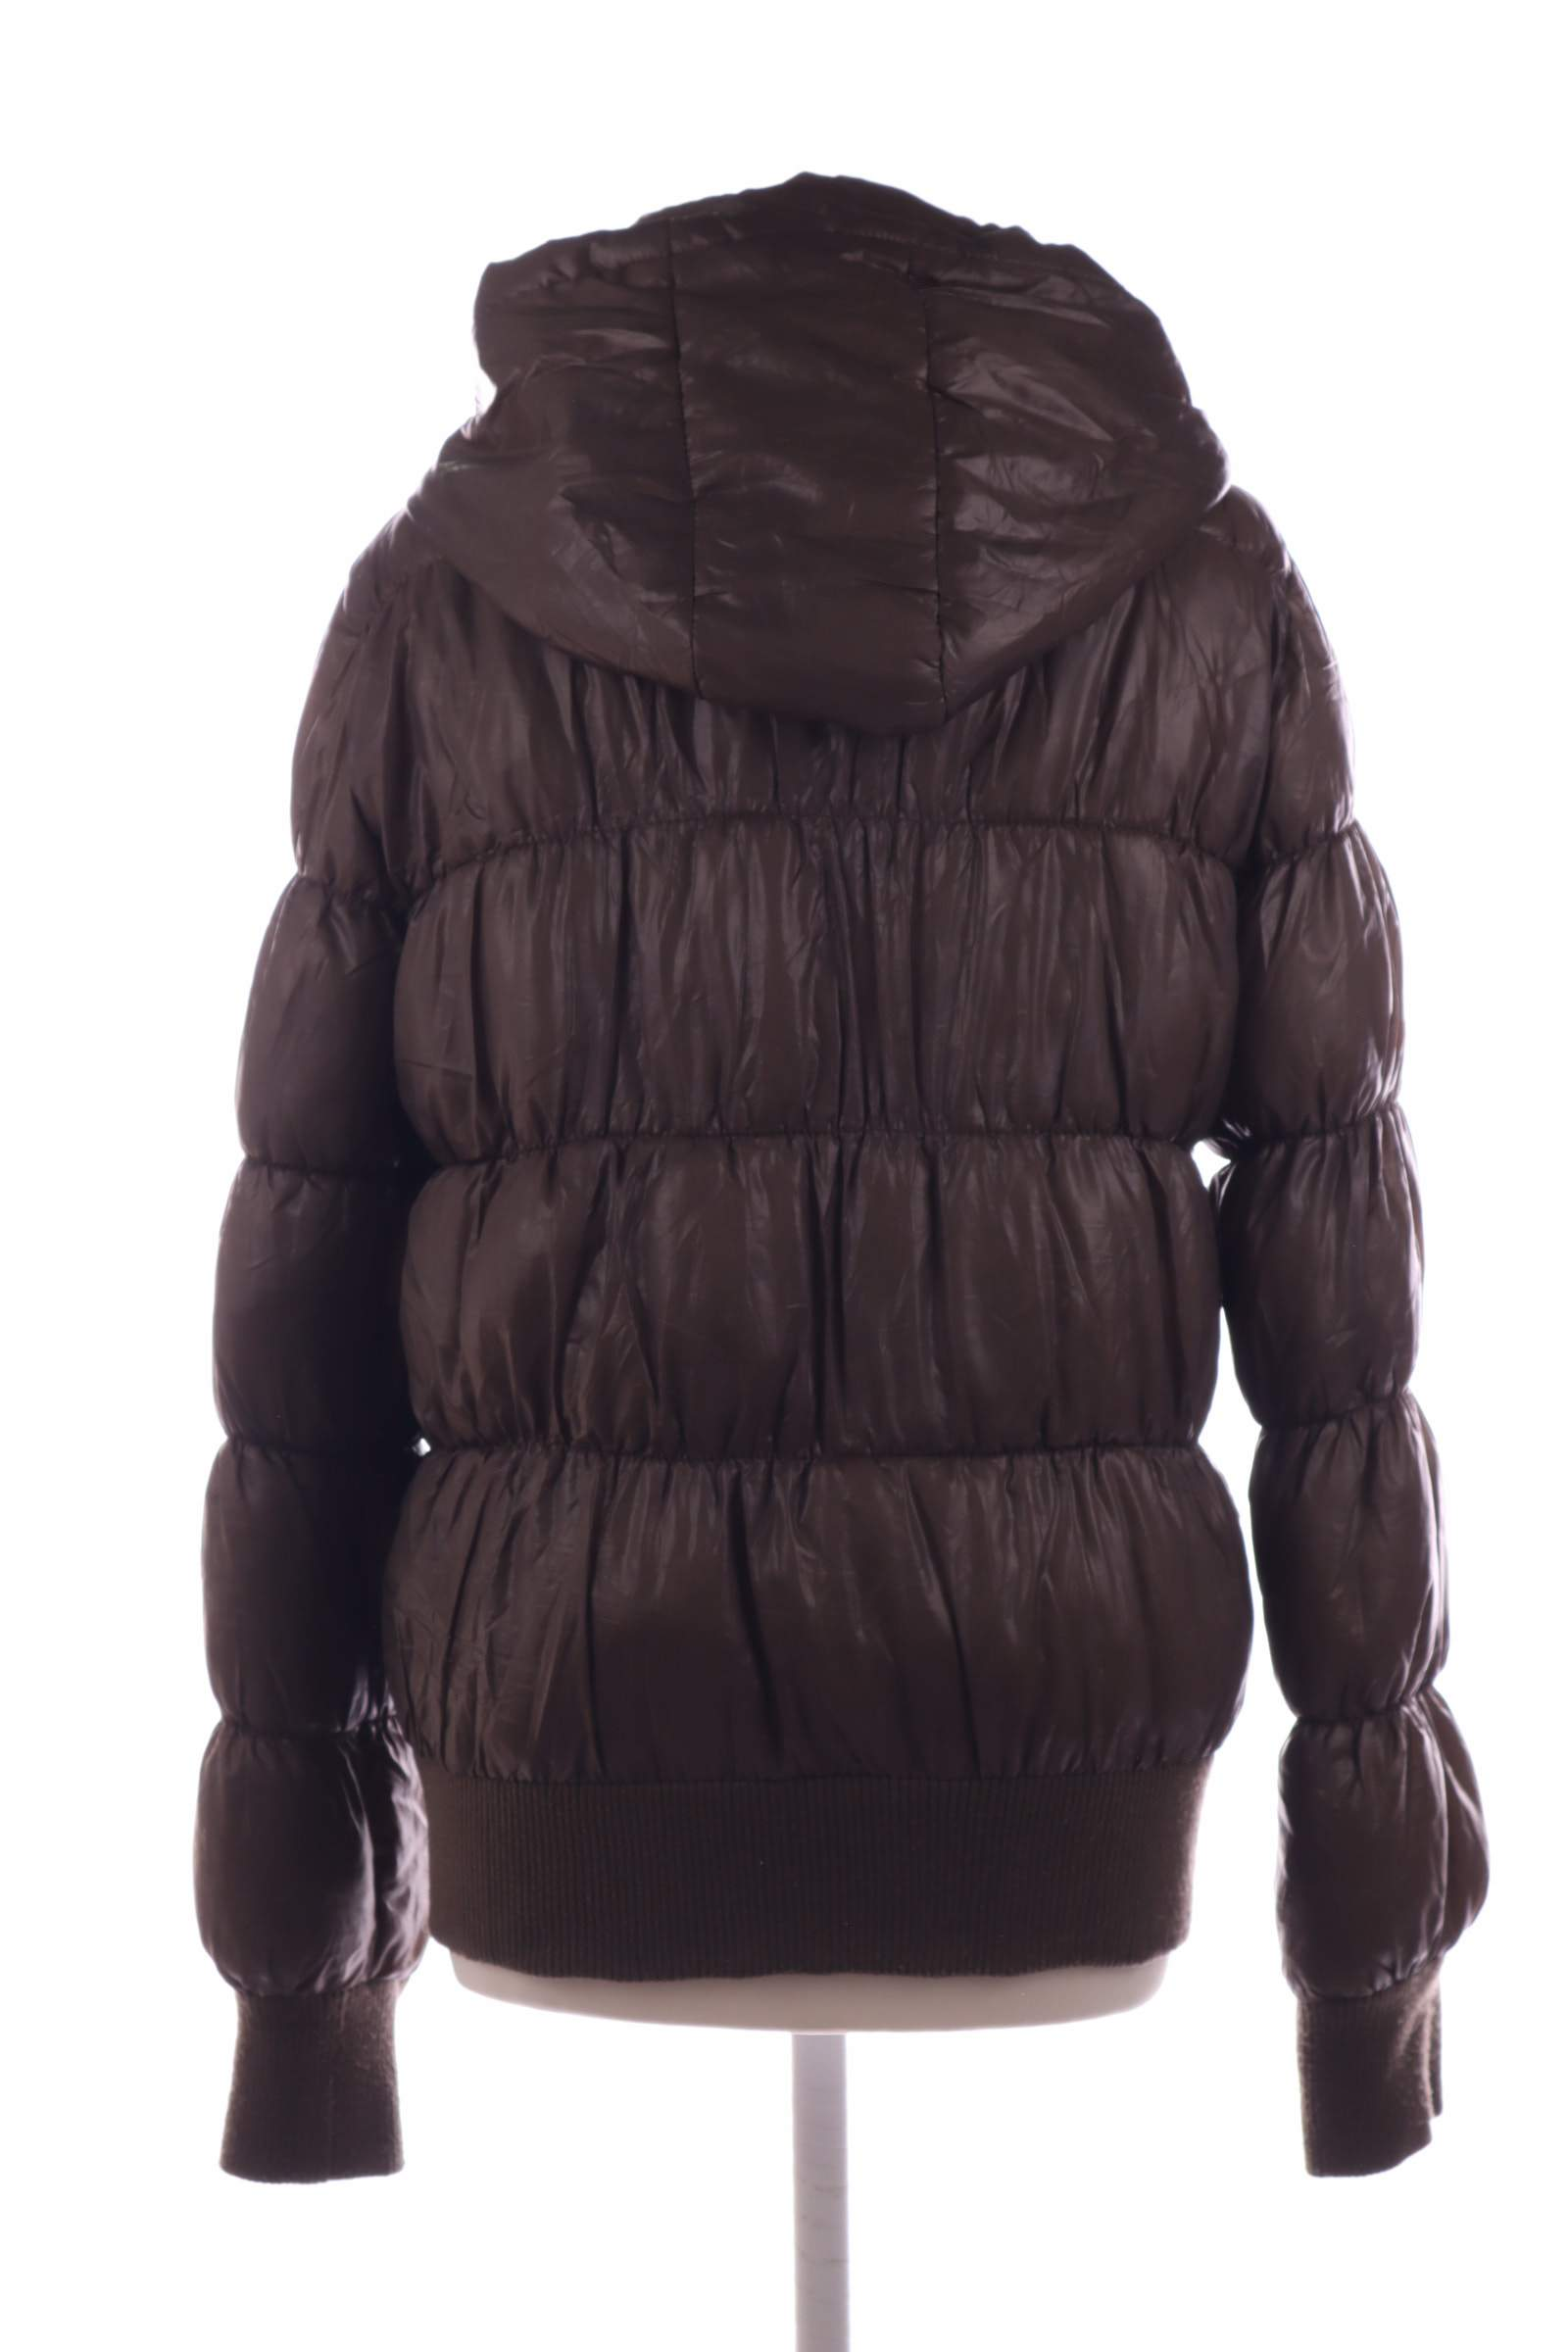 Vero Moda Brown Coat - upty.store